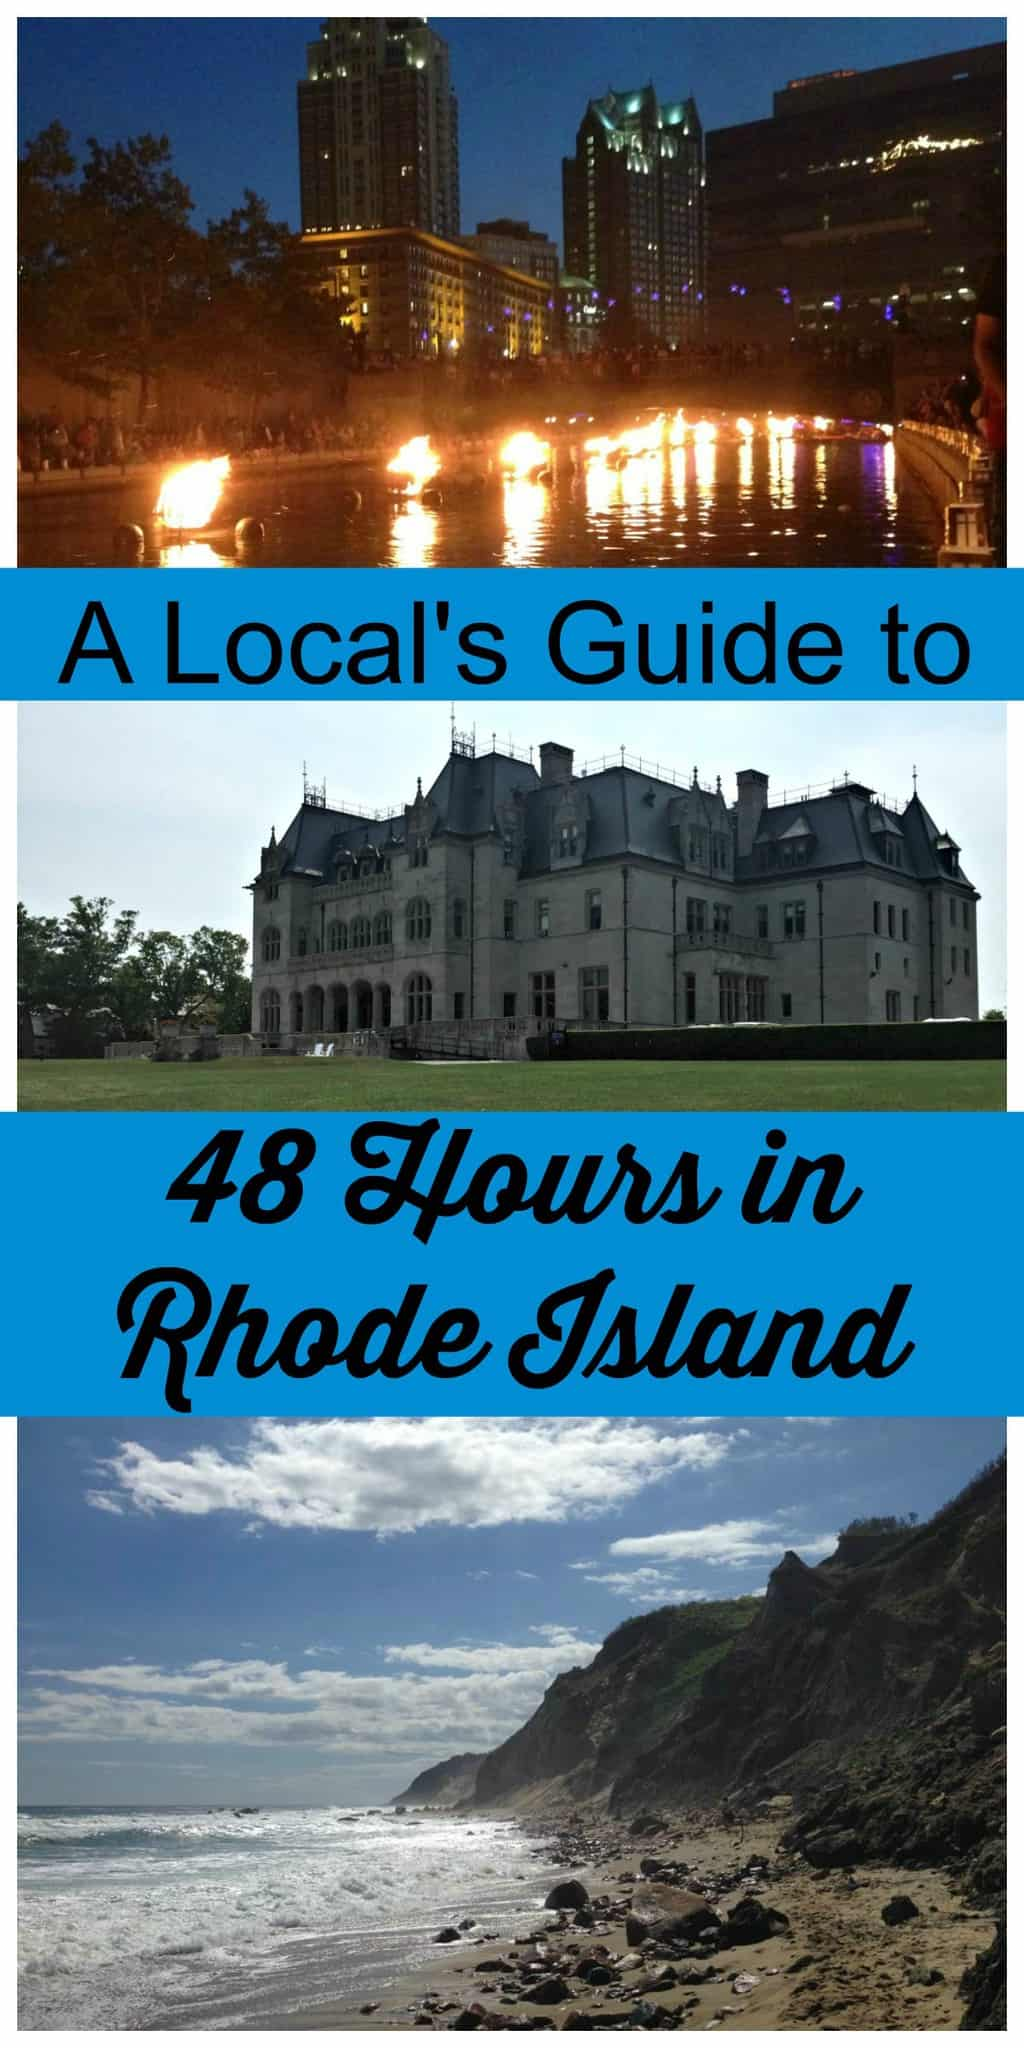 Spend 48 Hours in the smallest of the US States- Rhode Island. Experience our extensive coastline, gilded history and New England towns. #thingstodoinRhodeIsland #48HoursinRhodeIsland #ProvidenceRI #RI #USTravel #themidlifeperspective #TBIN